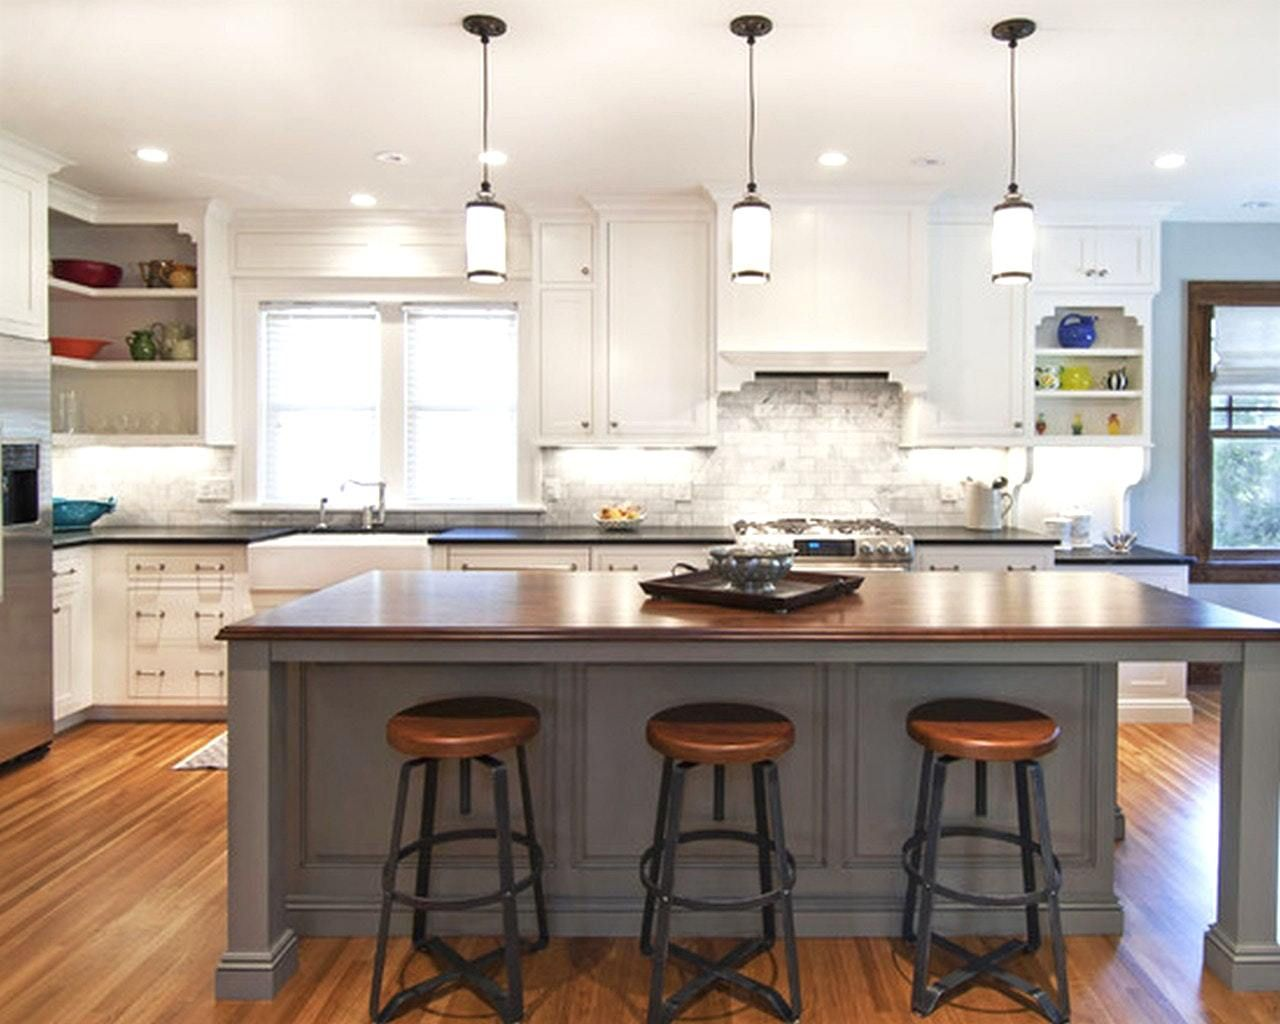 Attractive Pendant Lights Enjoyable Kitchen Lighting Over Table Modern For Island With  Copper Light Above And Lightings